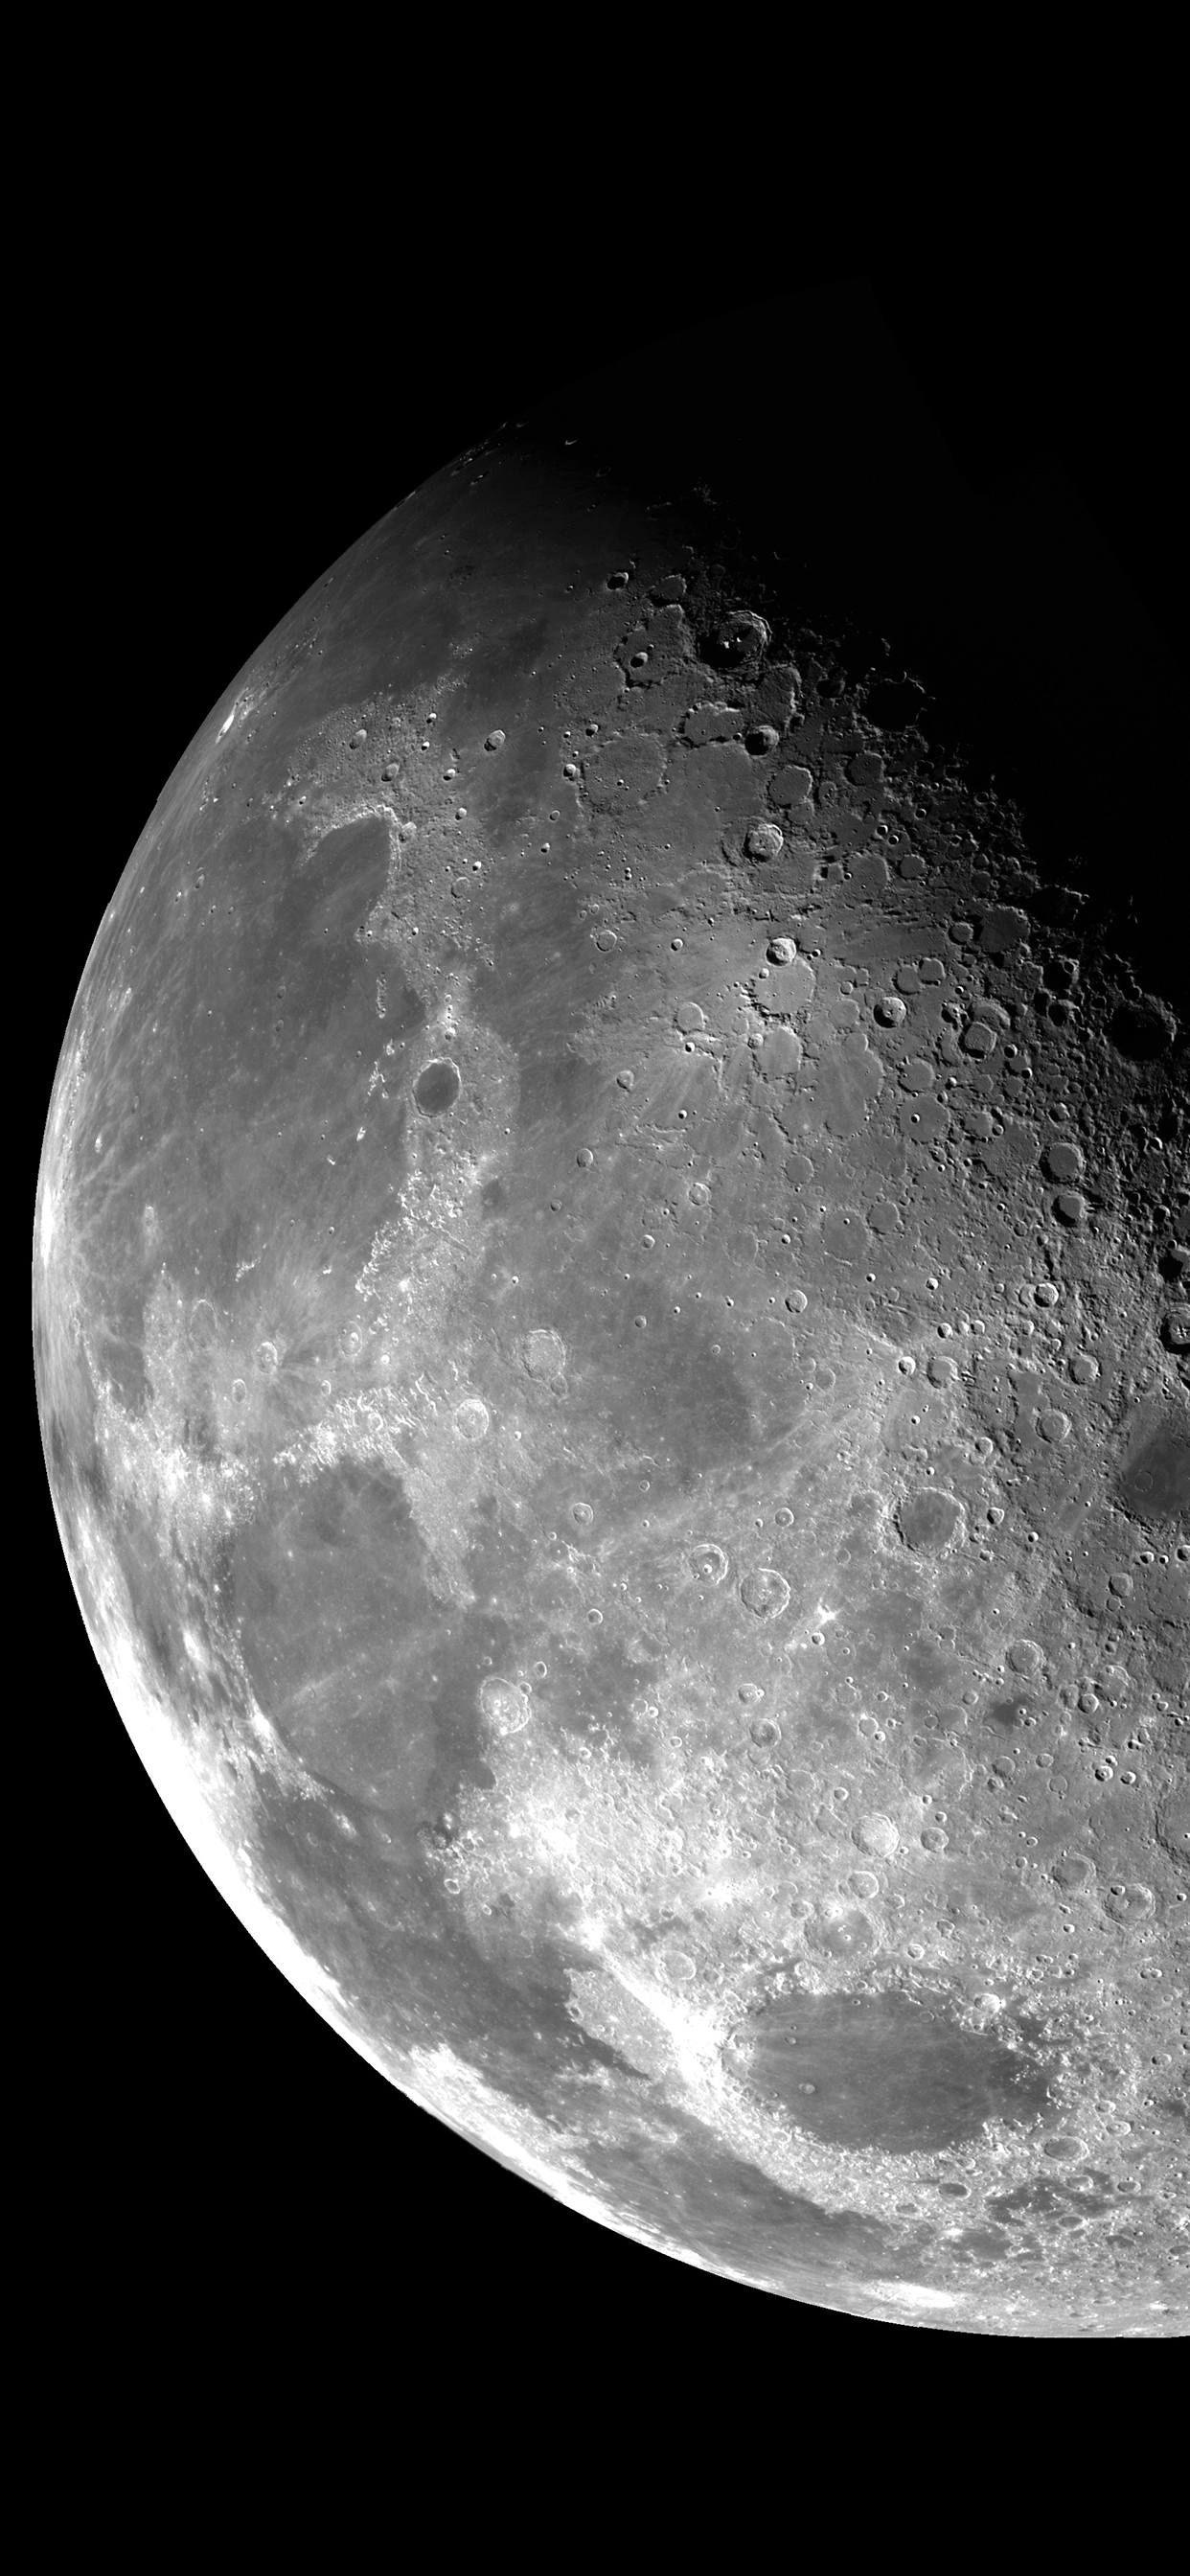 iPhone wallpaper moon full Moon